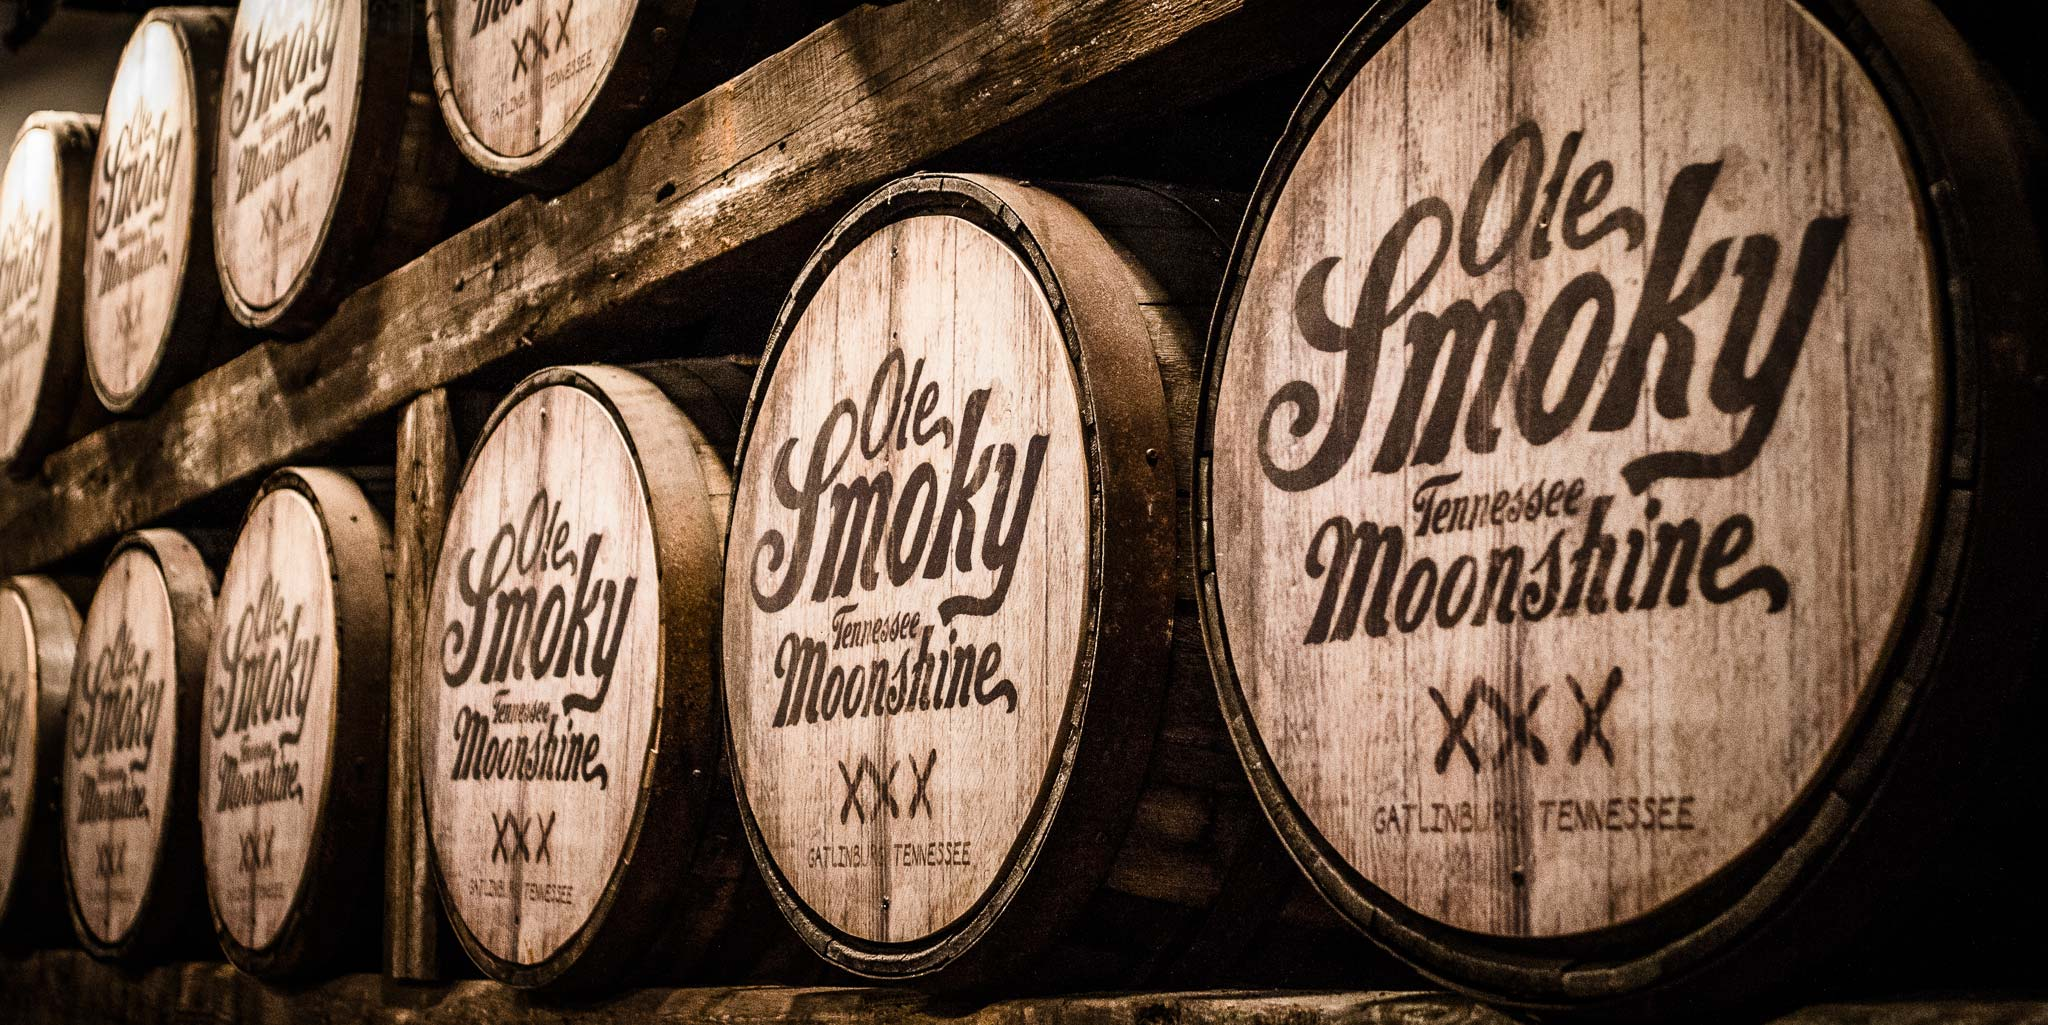 Breweries, Distilleries, & Wineries in the Smoky Mountains